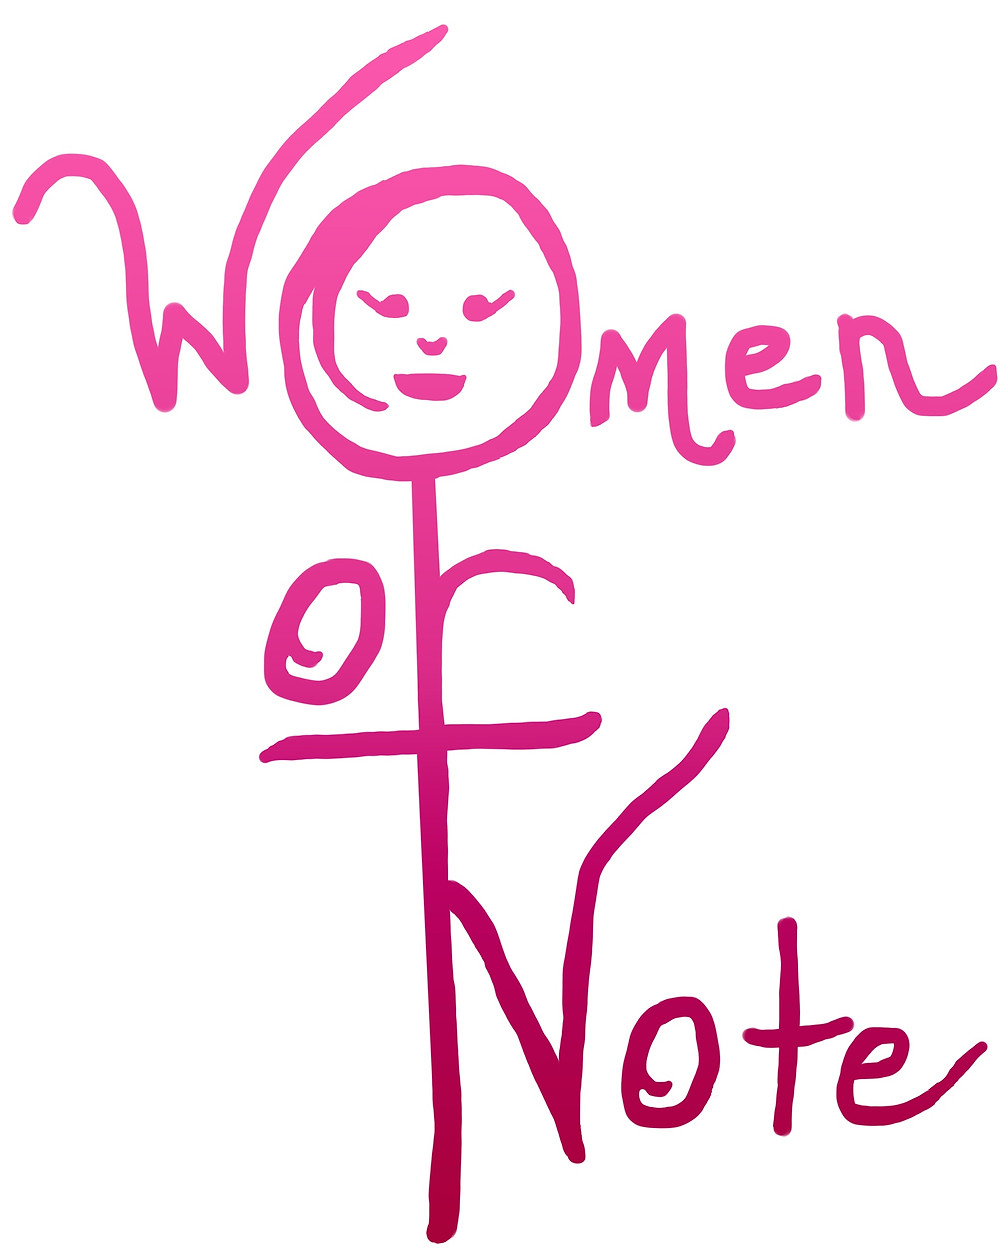 """The words 'Women of Note"""" in pink.  The O in women has a simple face drawn in it, which creates the Greek symbol for the female."""